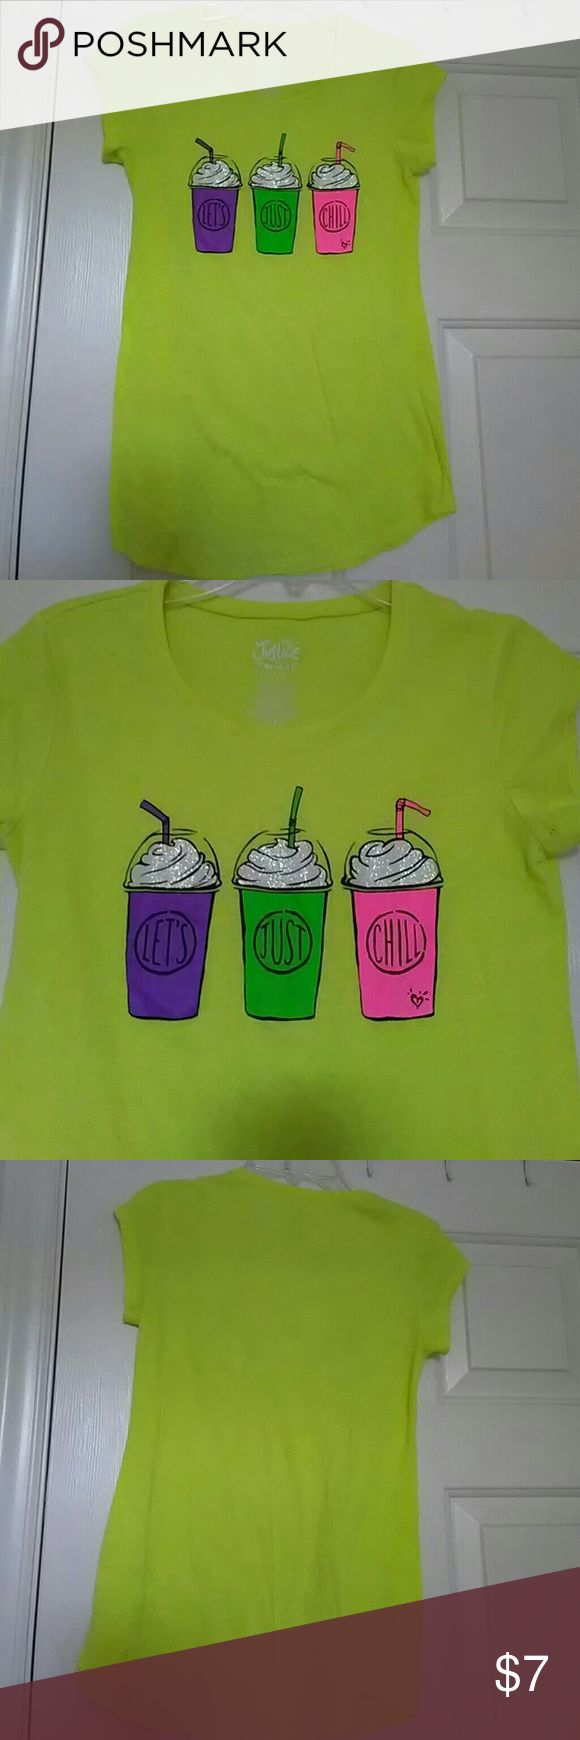 Justice t-shirt Lets Just Chill Neon Yellow 12 This is an adorable Justice shirt in a size 12. Is neon yellow with milkshakes on the front and neon purple green and pink. It is gently used in excellent condition. The top is 60% cotton 40% polyester. The material is thin. It comes from a pet and smoke-free environment. Handled with ❤. Thank you for looking Justice Shirts & Tops Tees - Short Sleeve